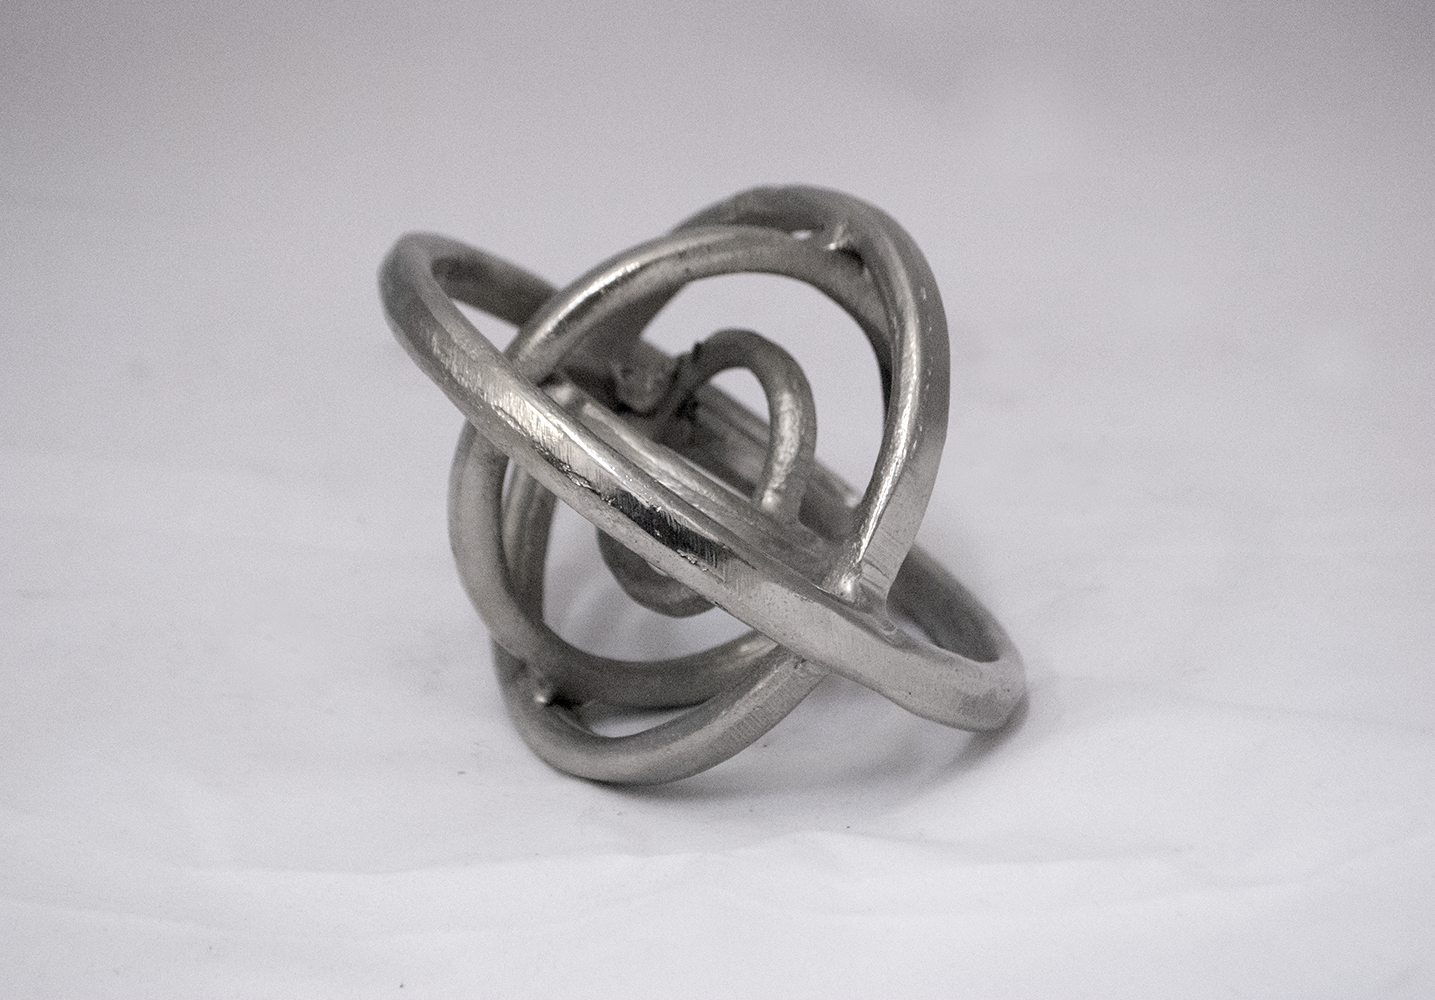 industrial silver sphere   Quantity: 1  Price: $7.50